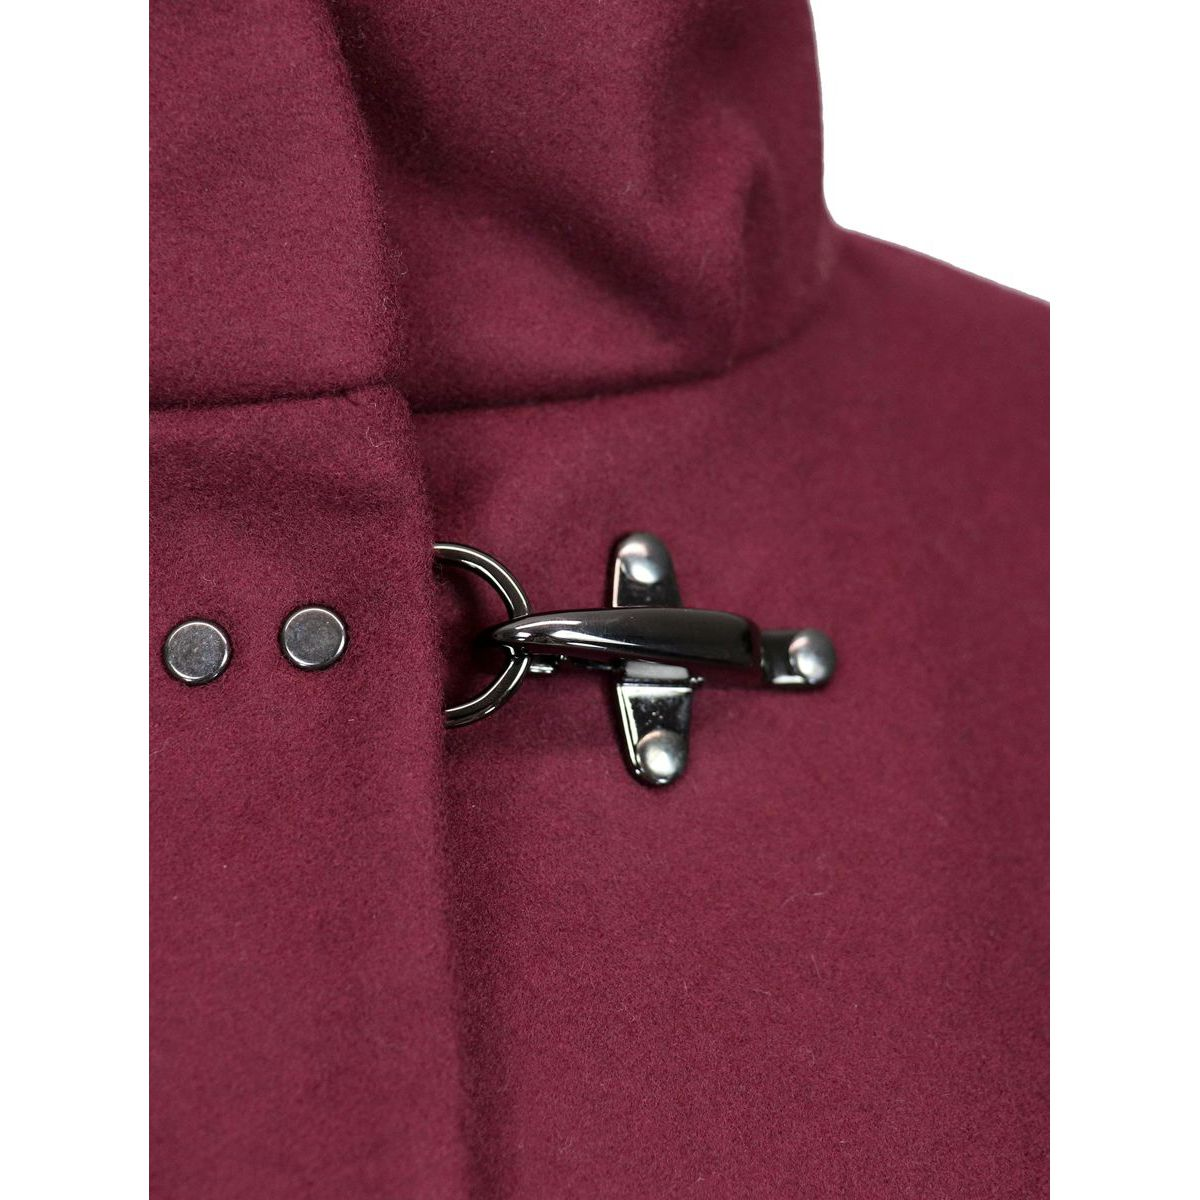 Collar coat standing with 3 hooks in woolen cloth Aubergine Fay